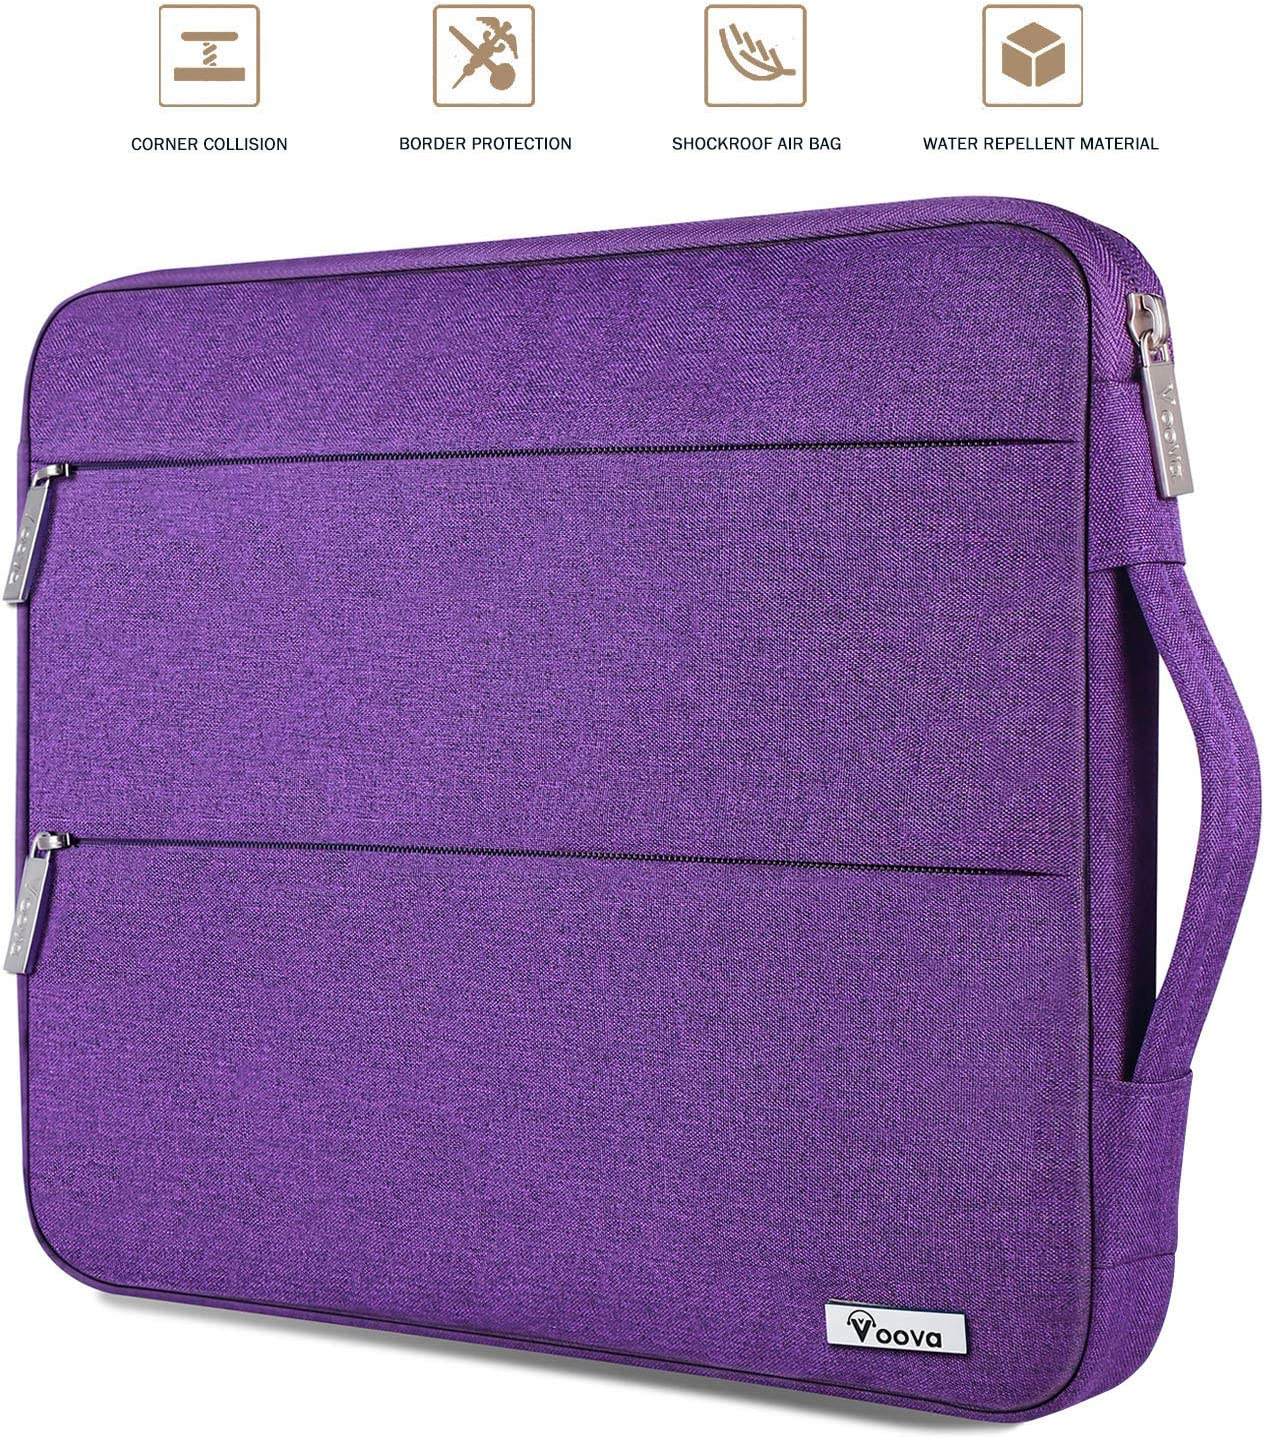 Voova 13 13.3 Inch Laptop Sleeve Case Computer Bag Compatible with MacBook Air/MacBook Pro 13, 13.5 Surface Book 2 / Laptop 3, 13 XPS/Chromebook Notebook Tablet Cover with Handle for Women, Purple